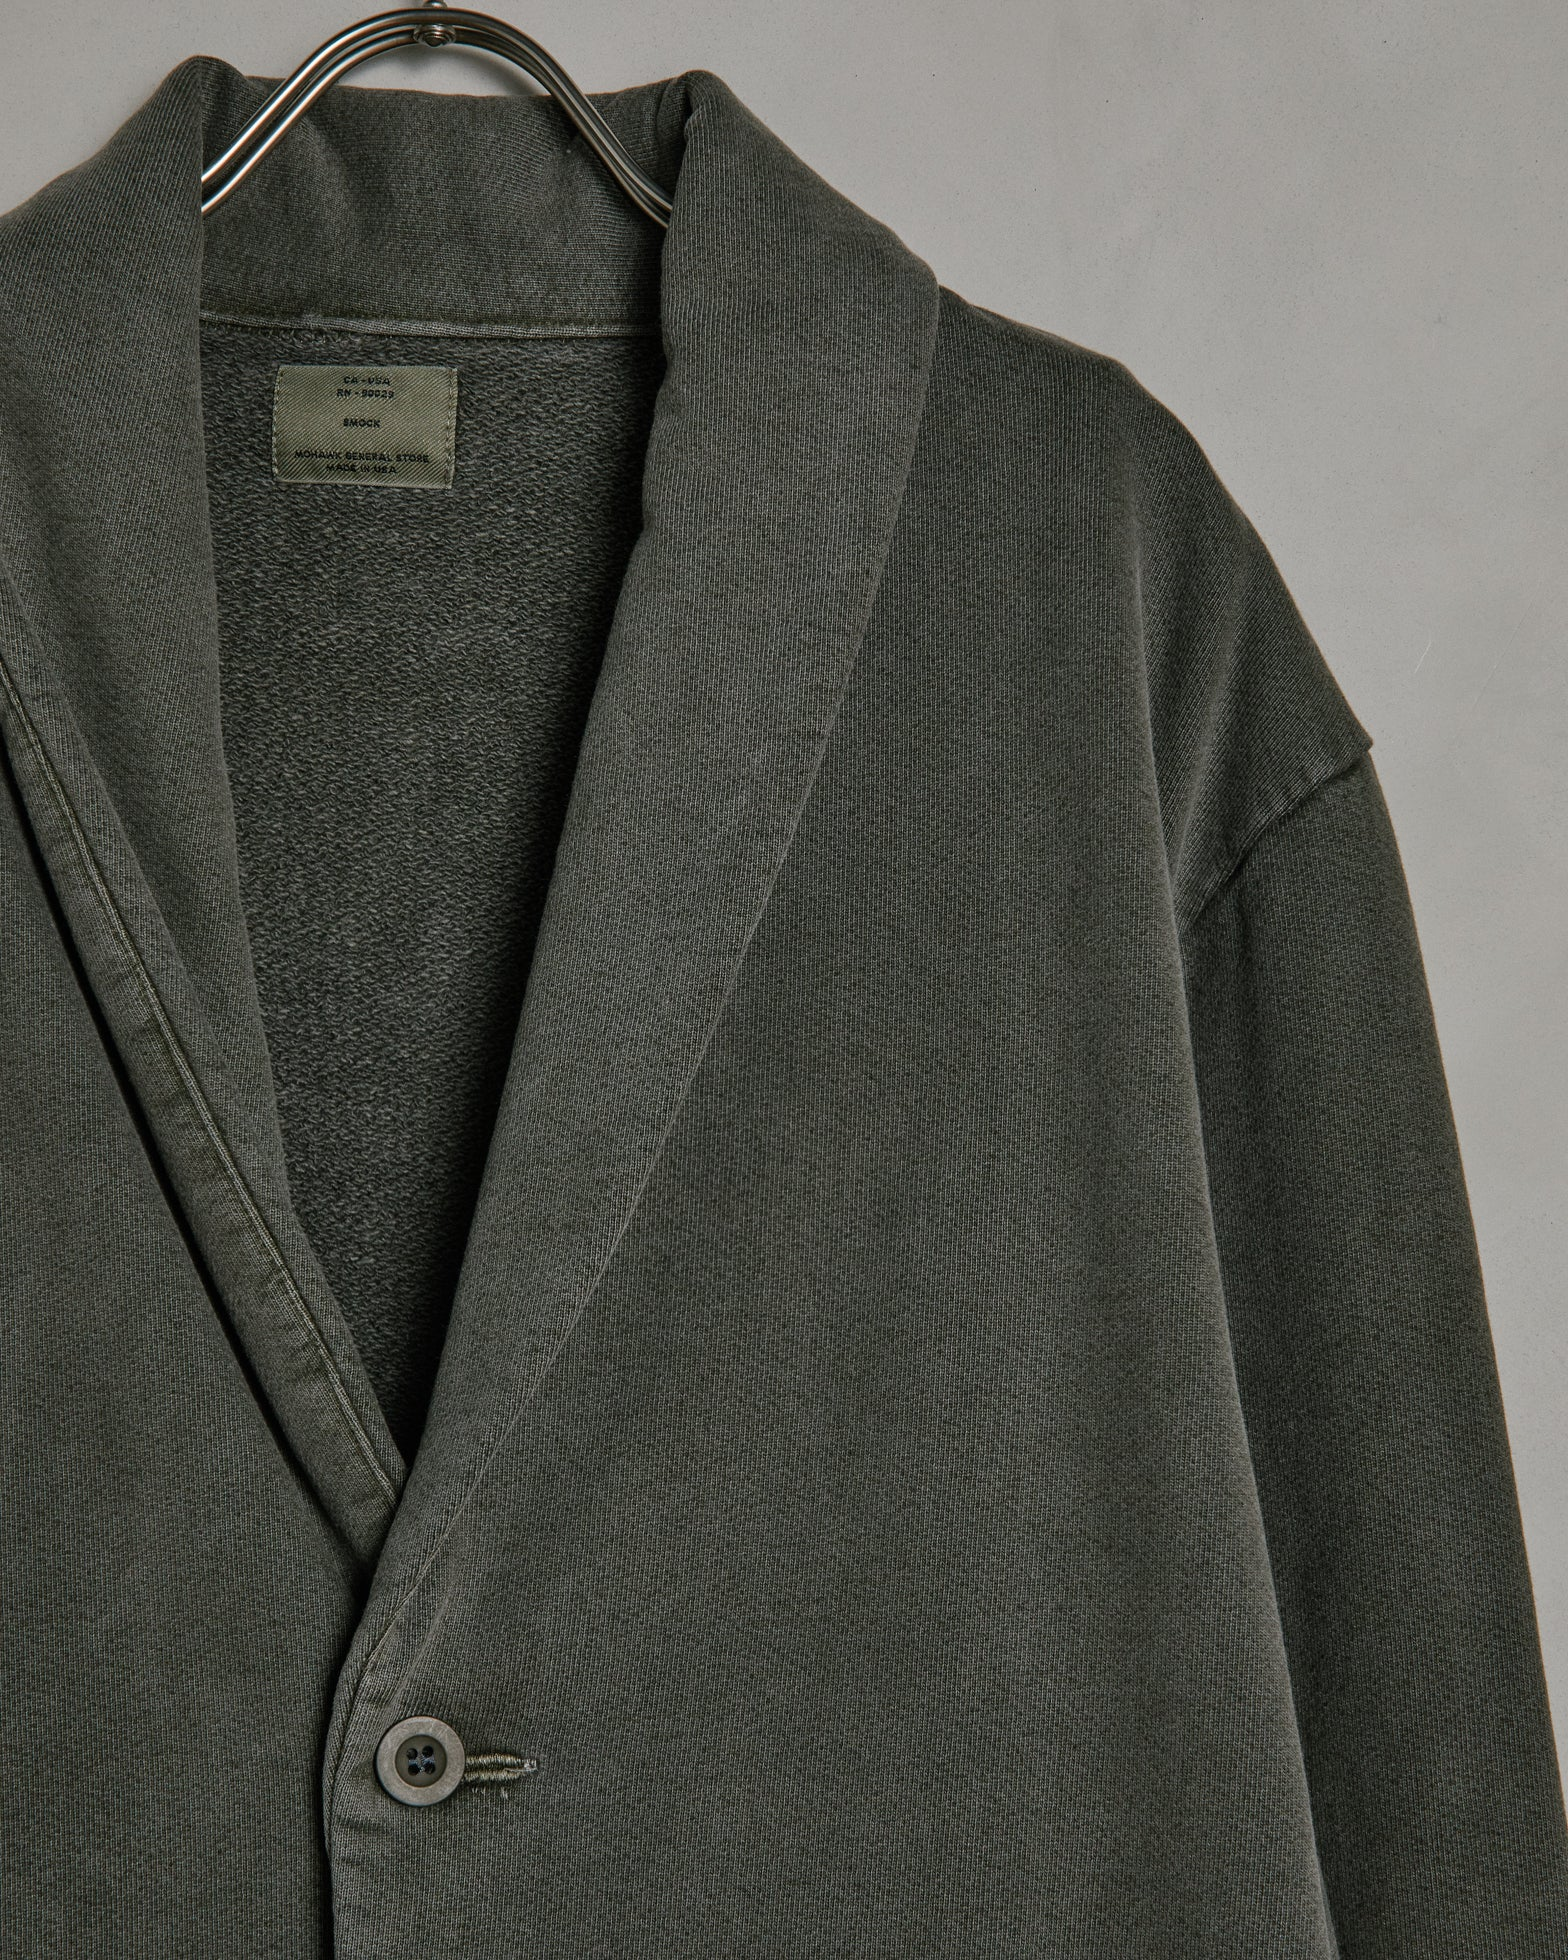 Hakone Cardigan in Olive